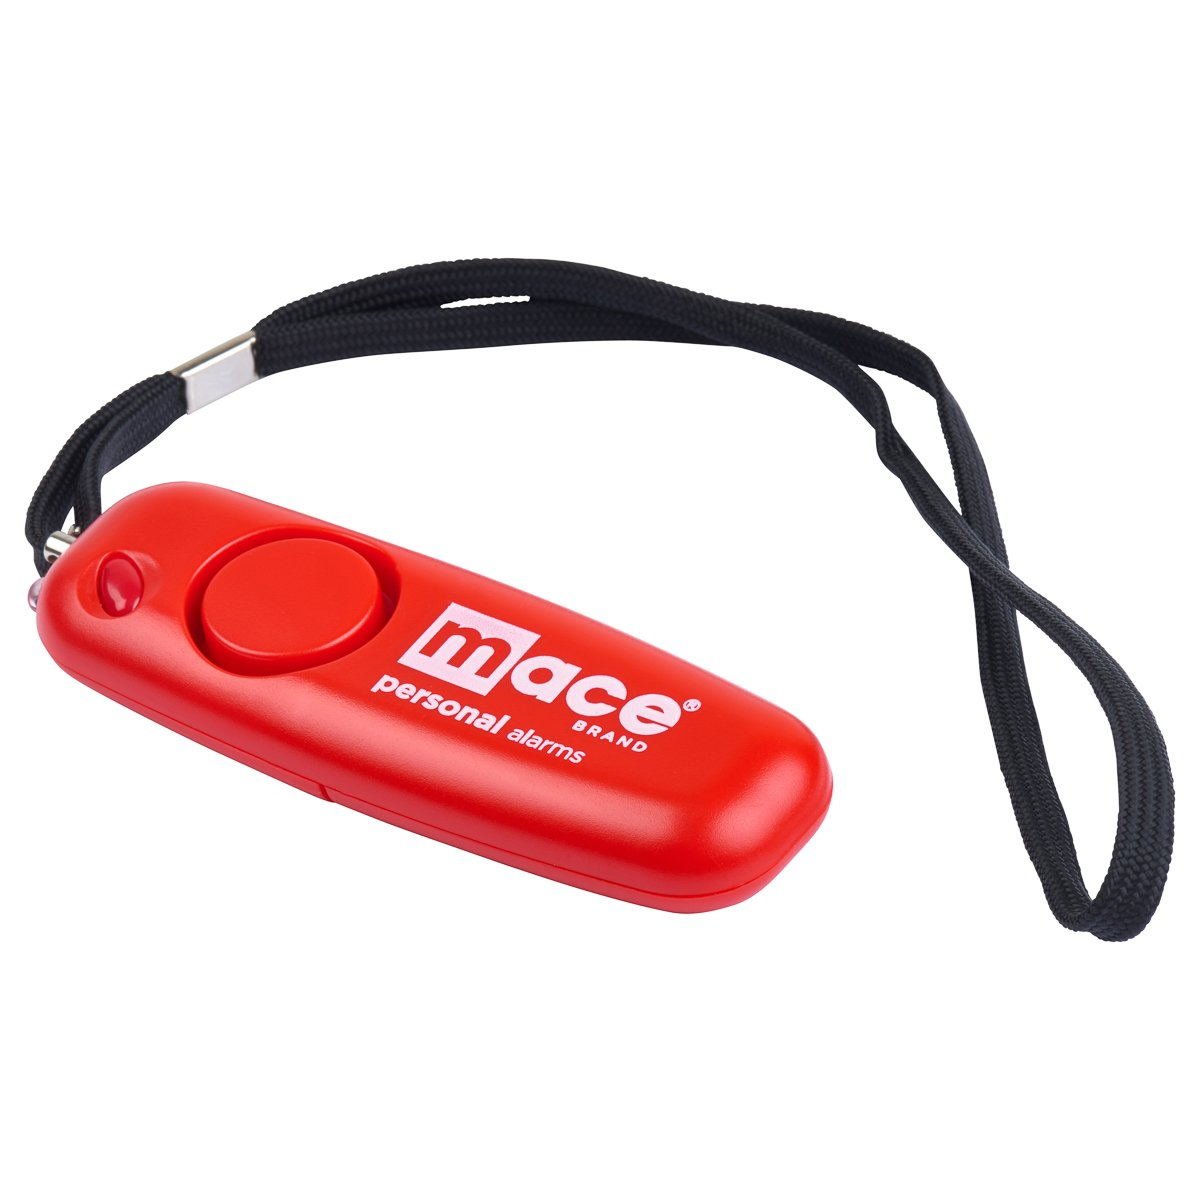 Mace Brand 130dB Alarm with LED Flashlight, Rip Cord Grenade Pin Activation and Included AAA Batteries Wristlet Model